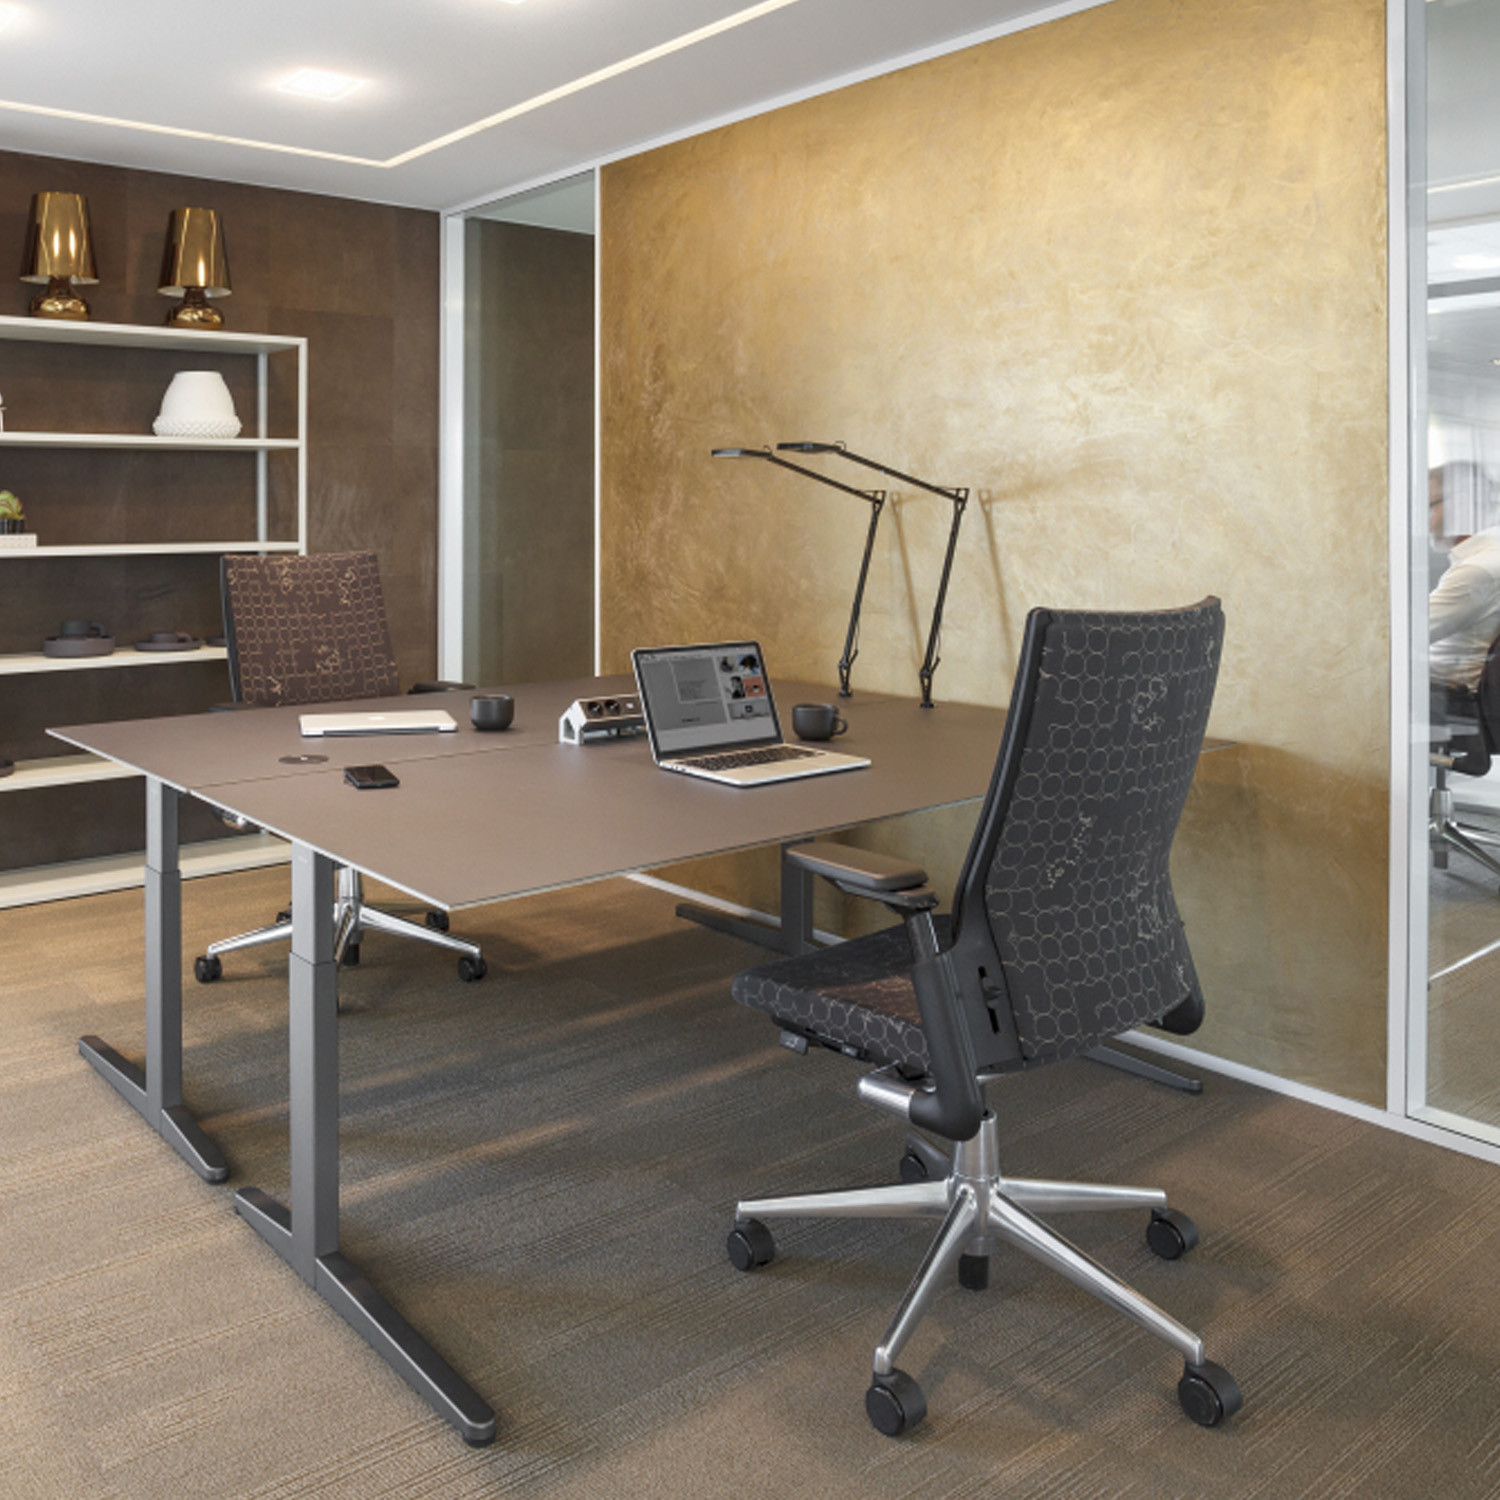 Ahrend Balance Adjustable Height Office Desks